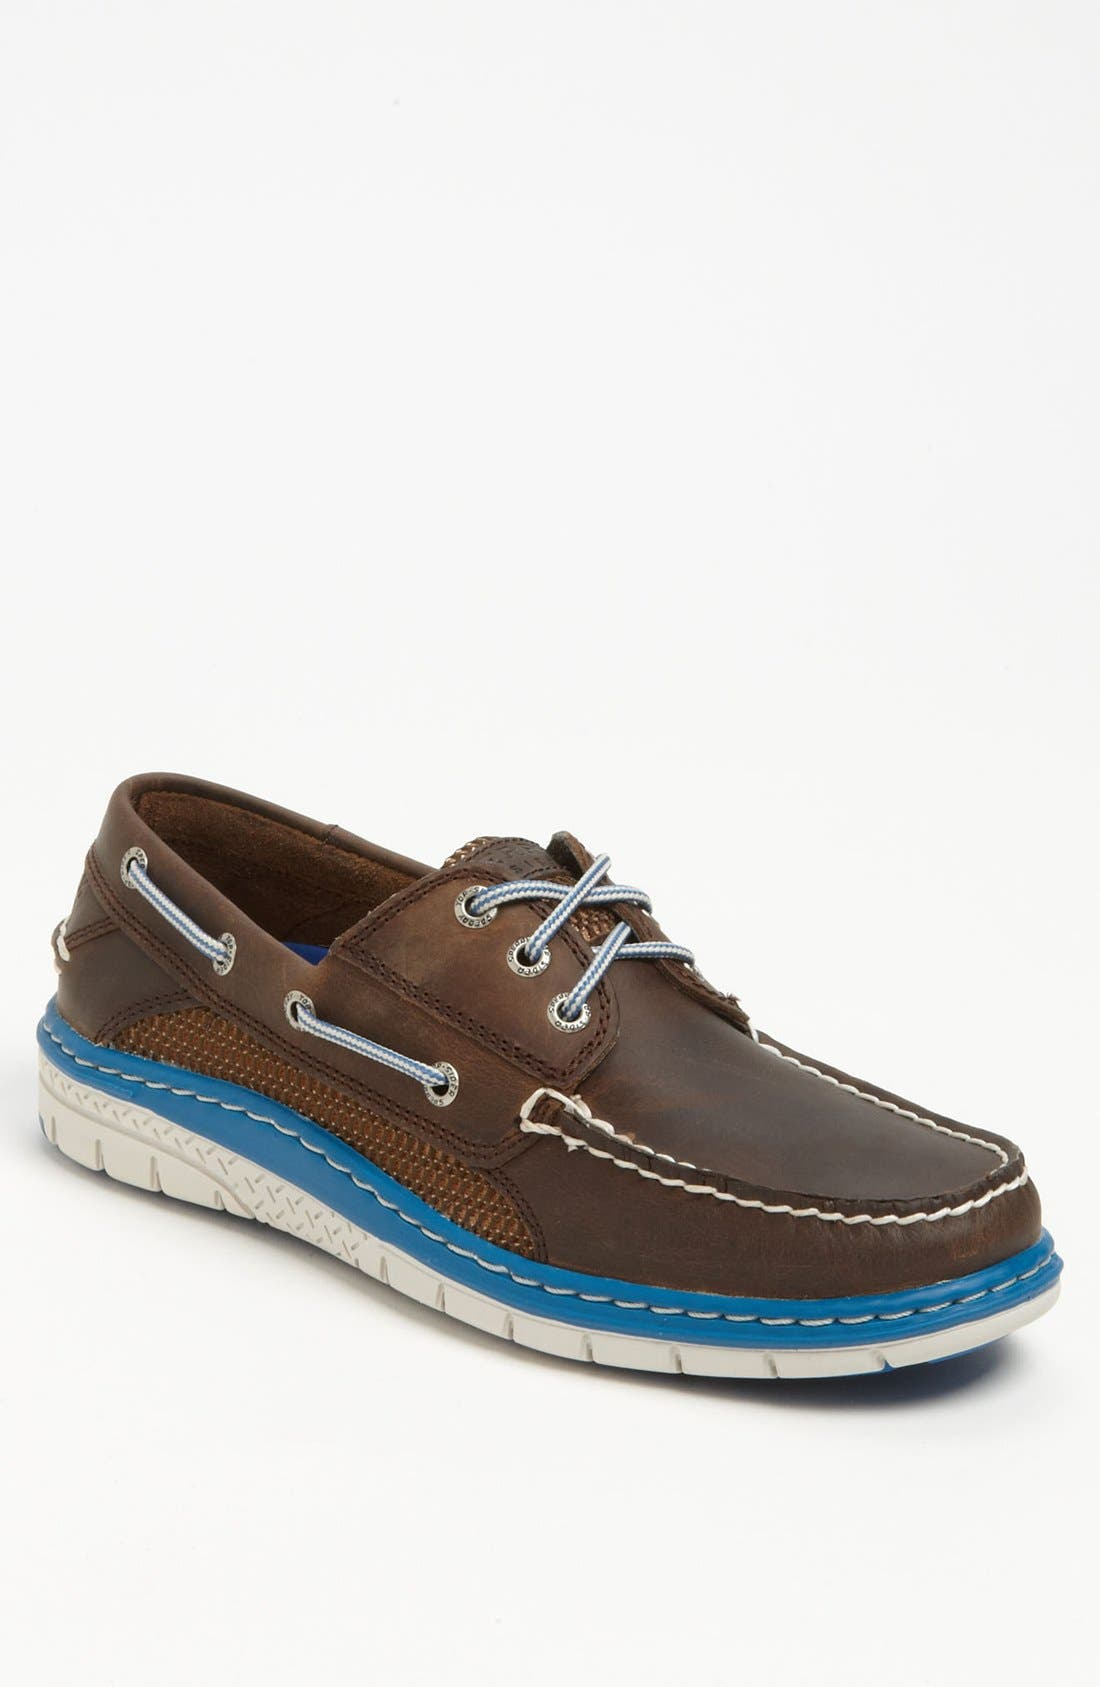 'Billfish Ultralite' Boat Shoe,                             Main thumbnail 9, color,